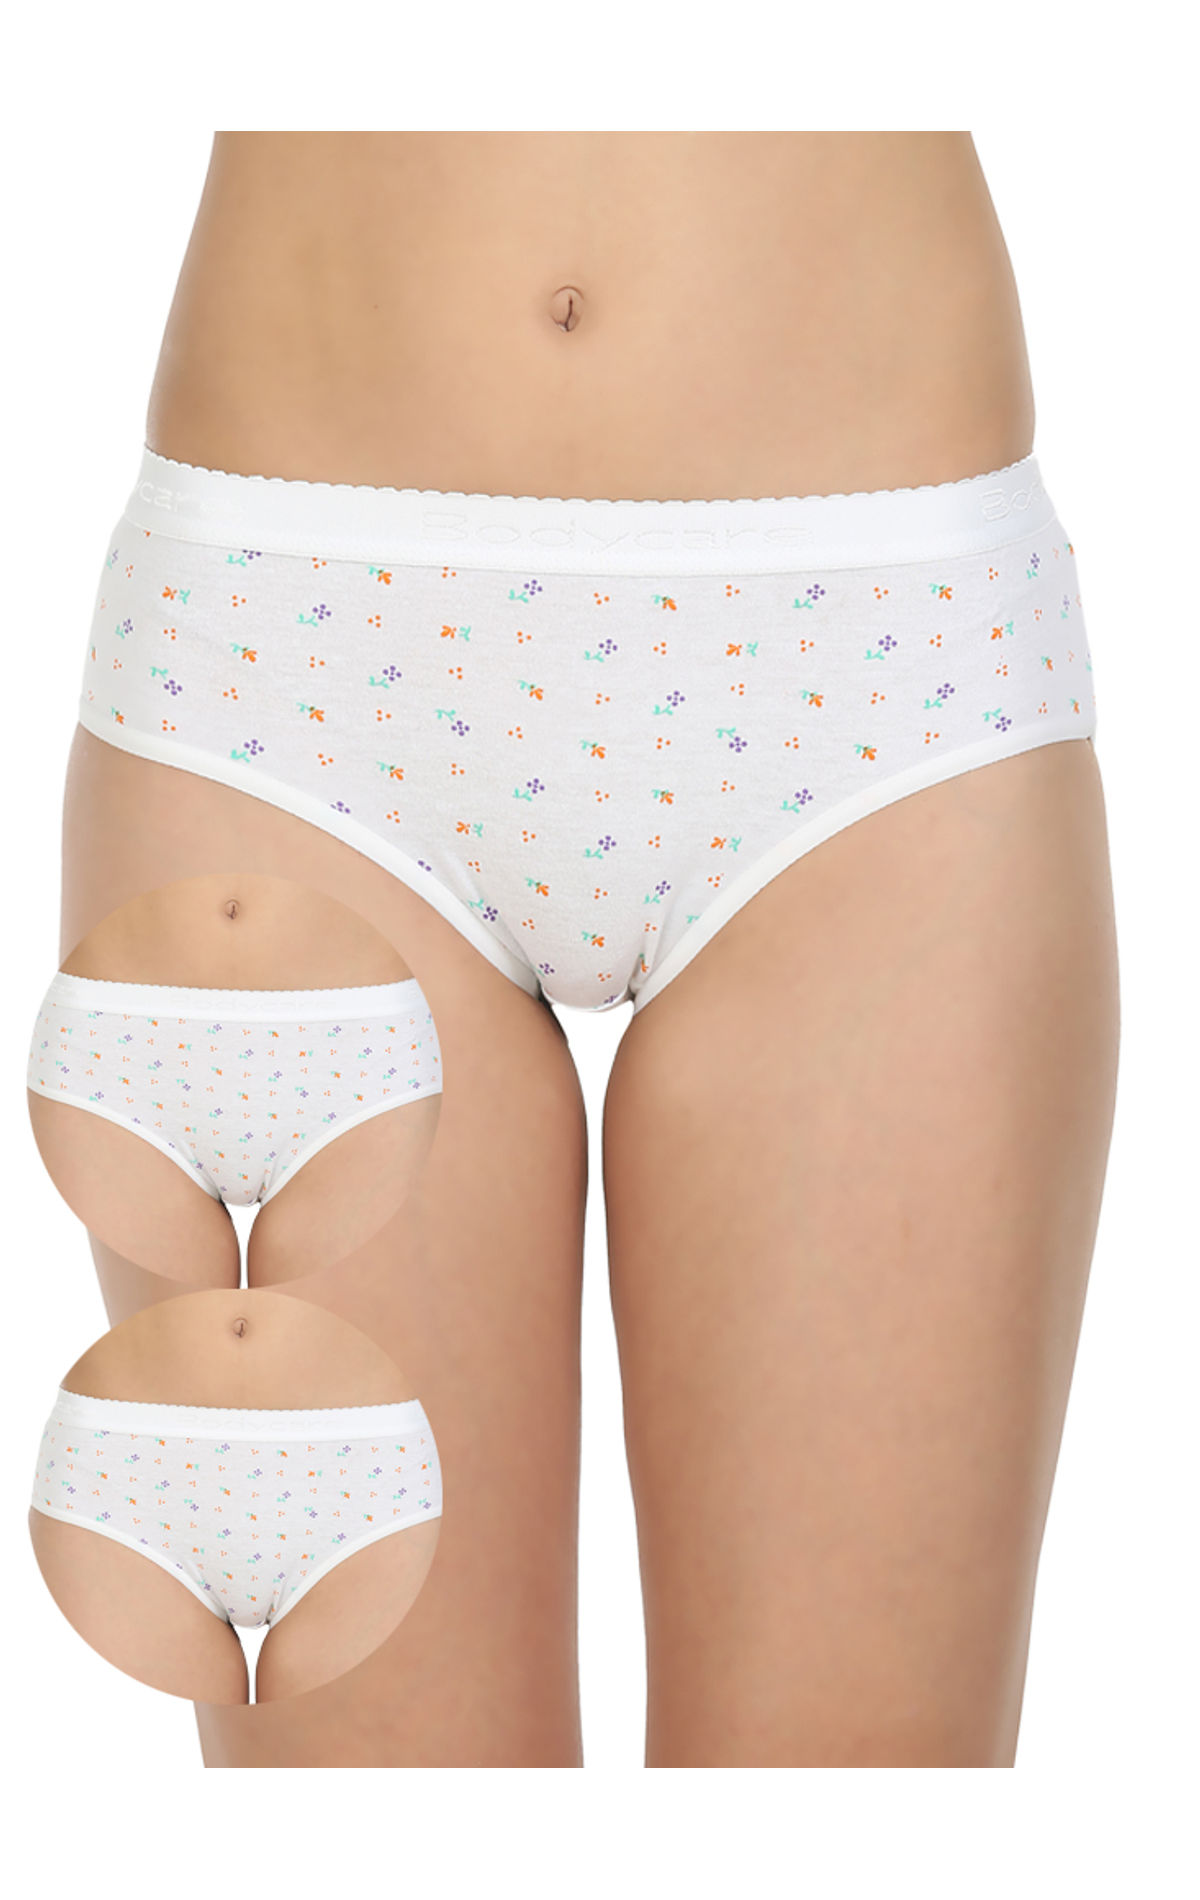 54f9af7359c9c sold-out-image Pack of 3 Printed Cotton Briefs in White color-14004